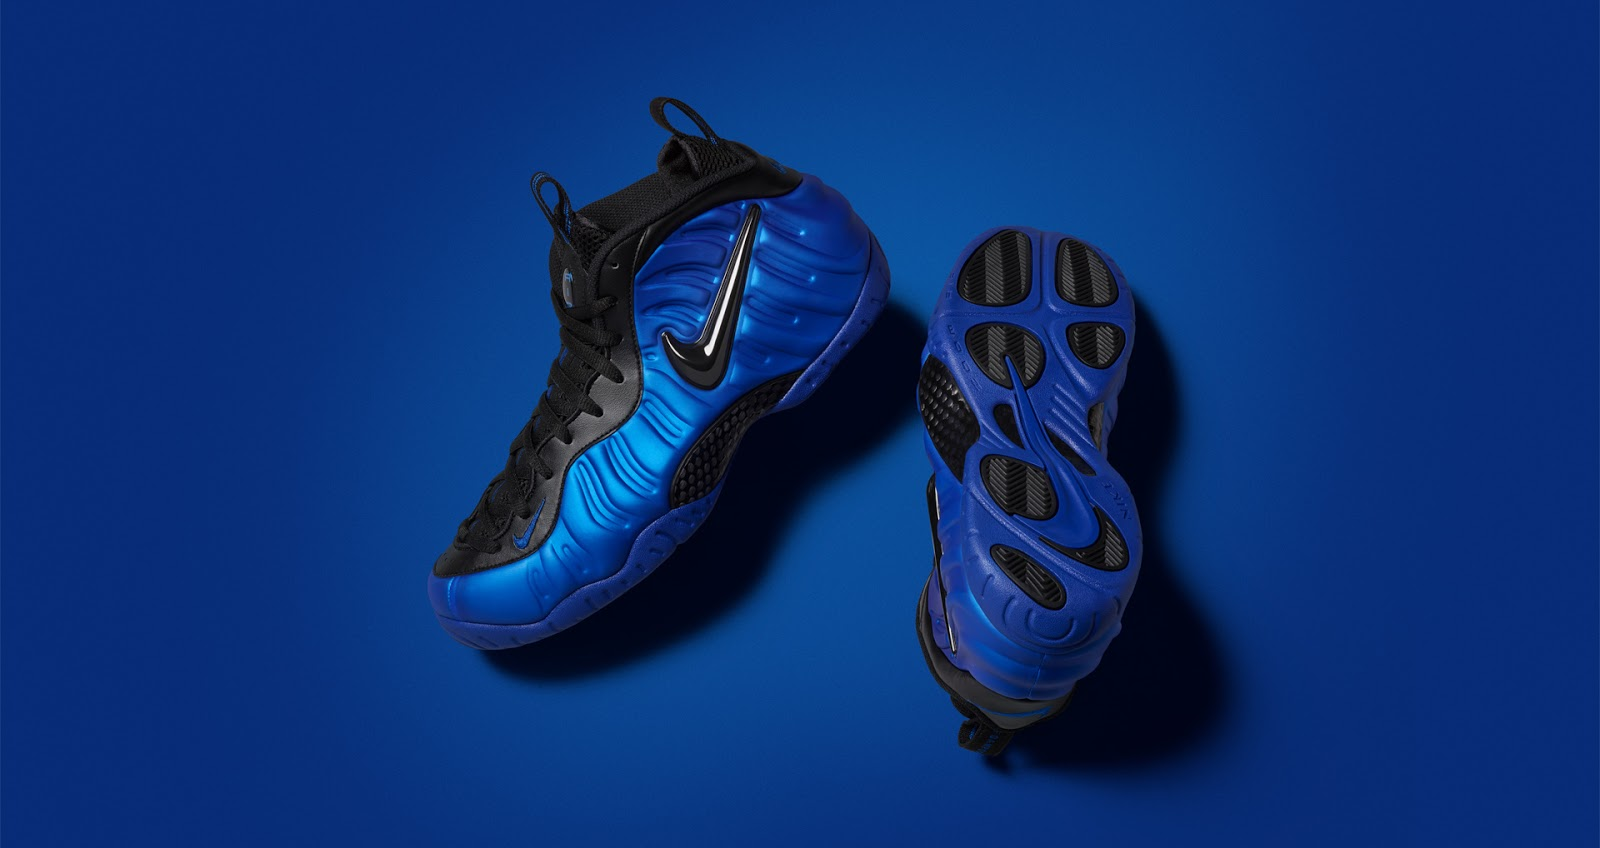 The pair will come in a colorway that Nike has dubbed \u0026quot;COBALT BLUE\u0026quot;. The shoes will feature an electric blue like color on the upper paneling with beautiful ...